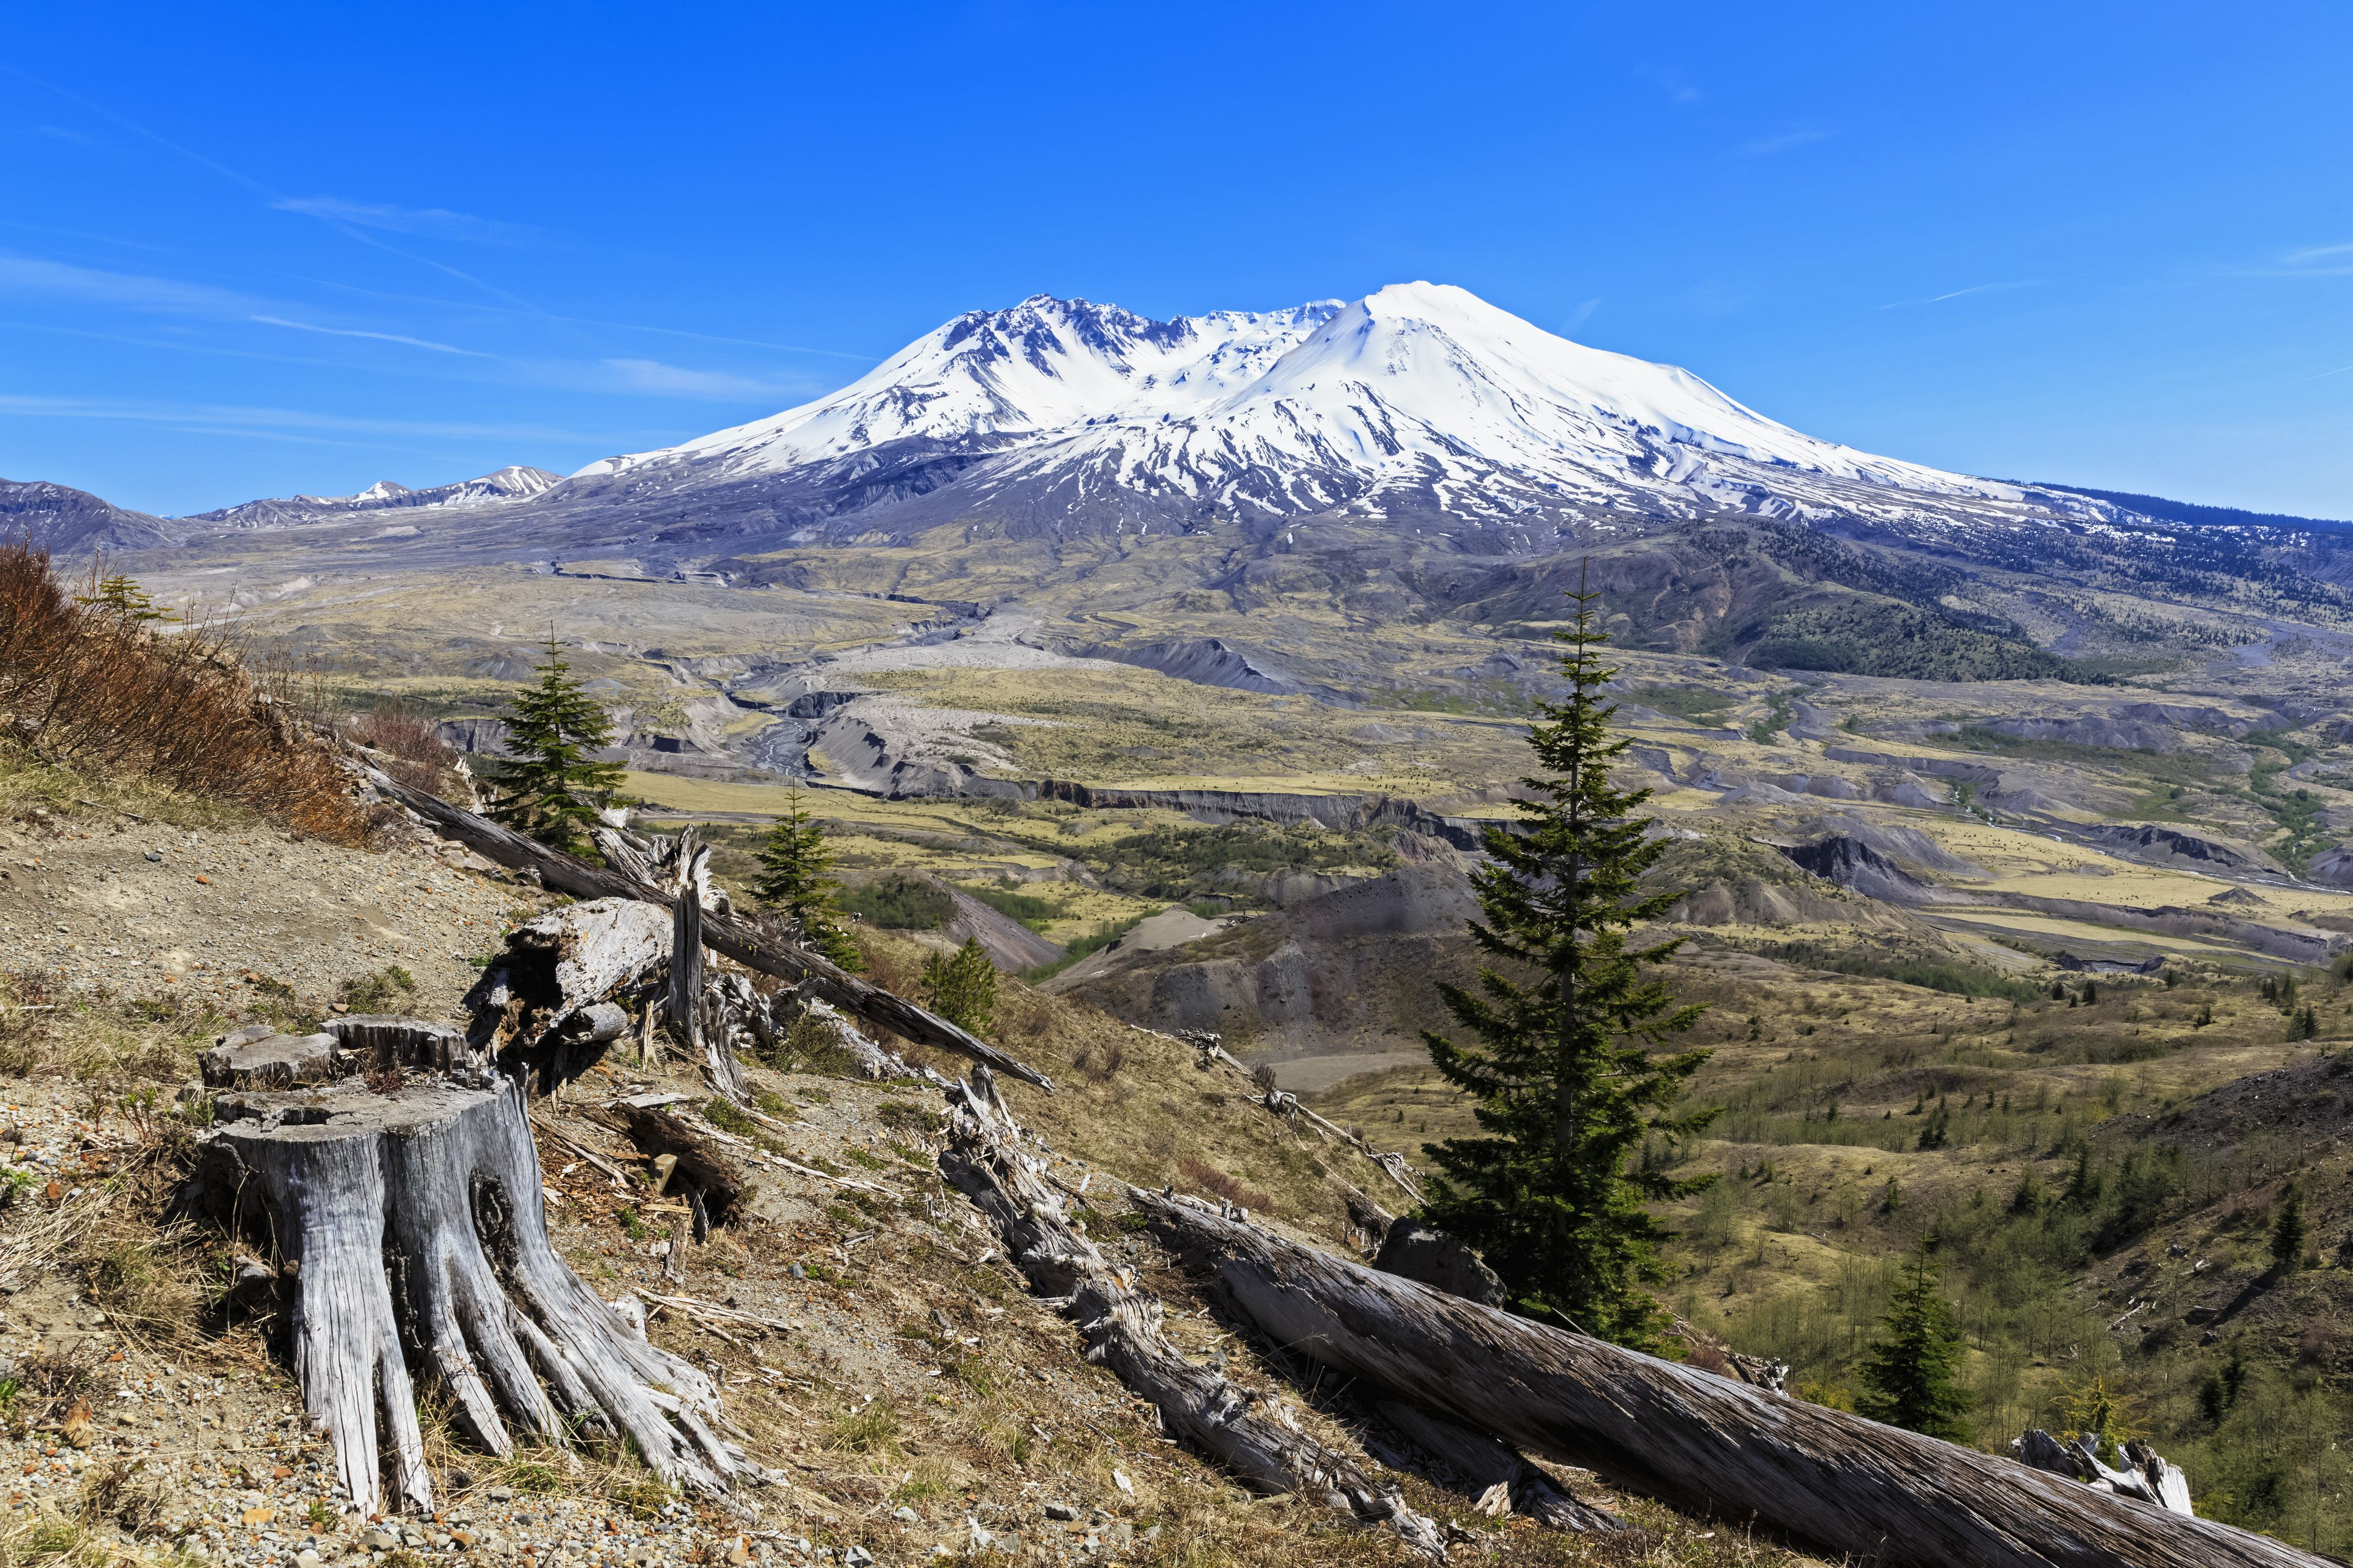 How Old Is the Mount St. Helens Lava Dome